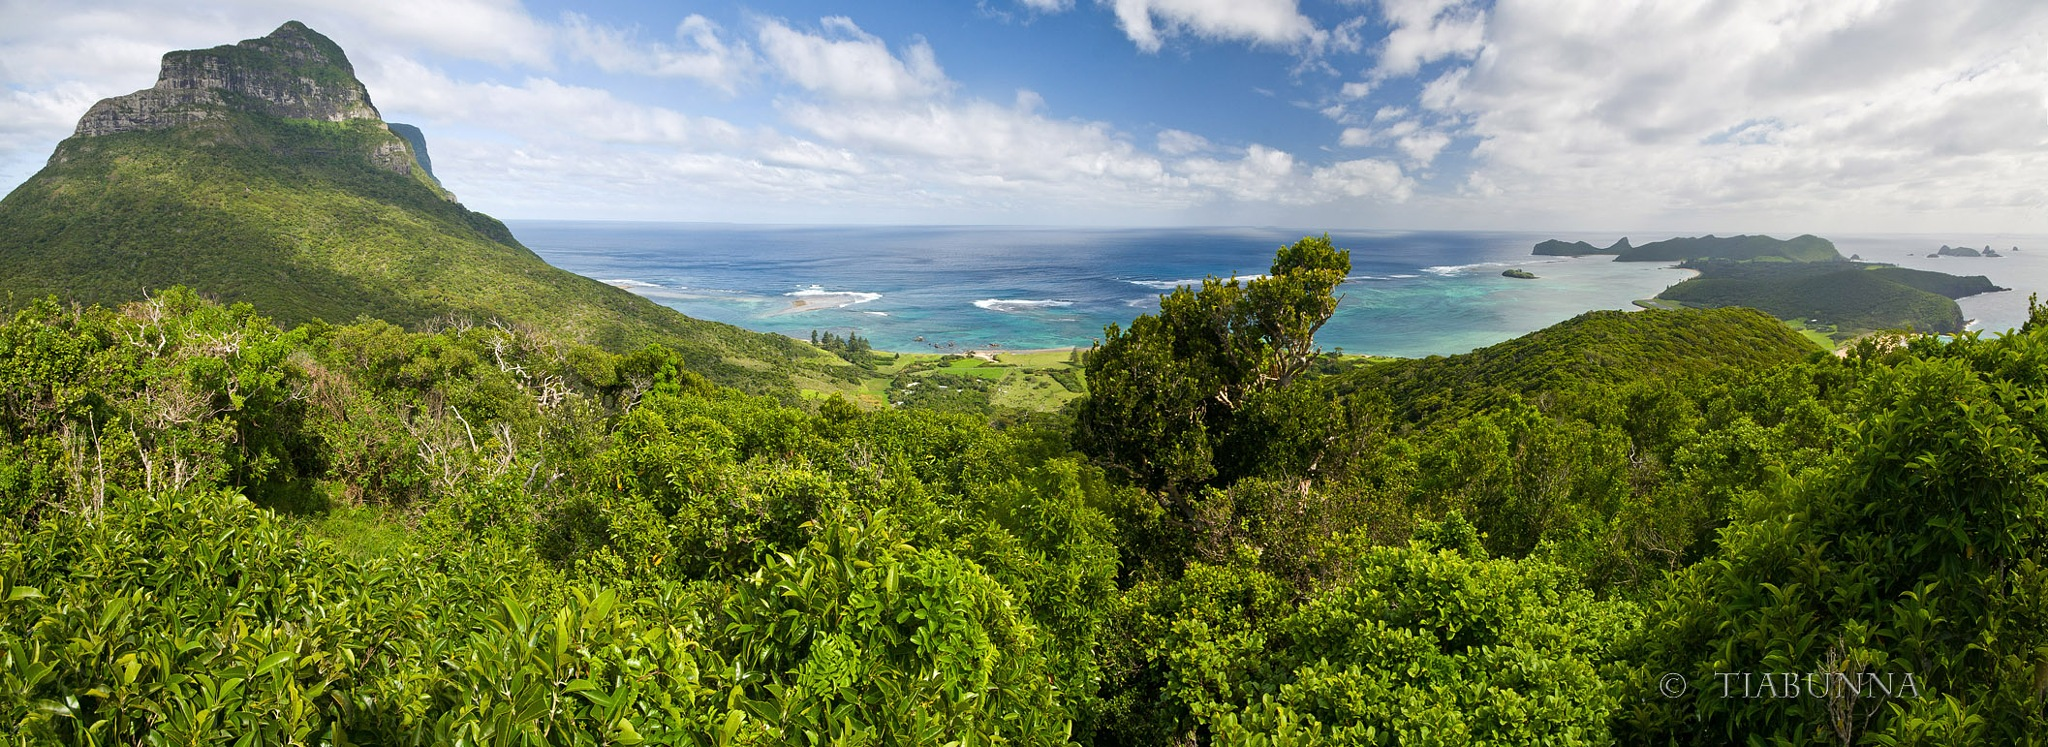 Island panorama by George Cook